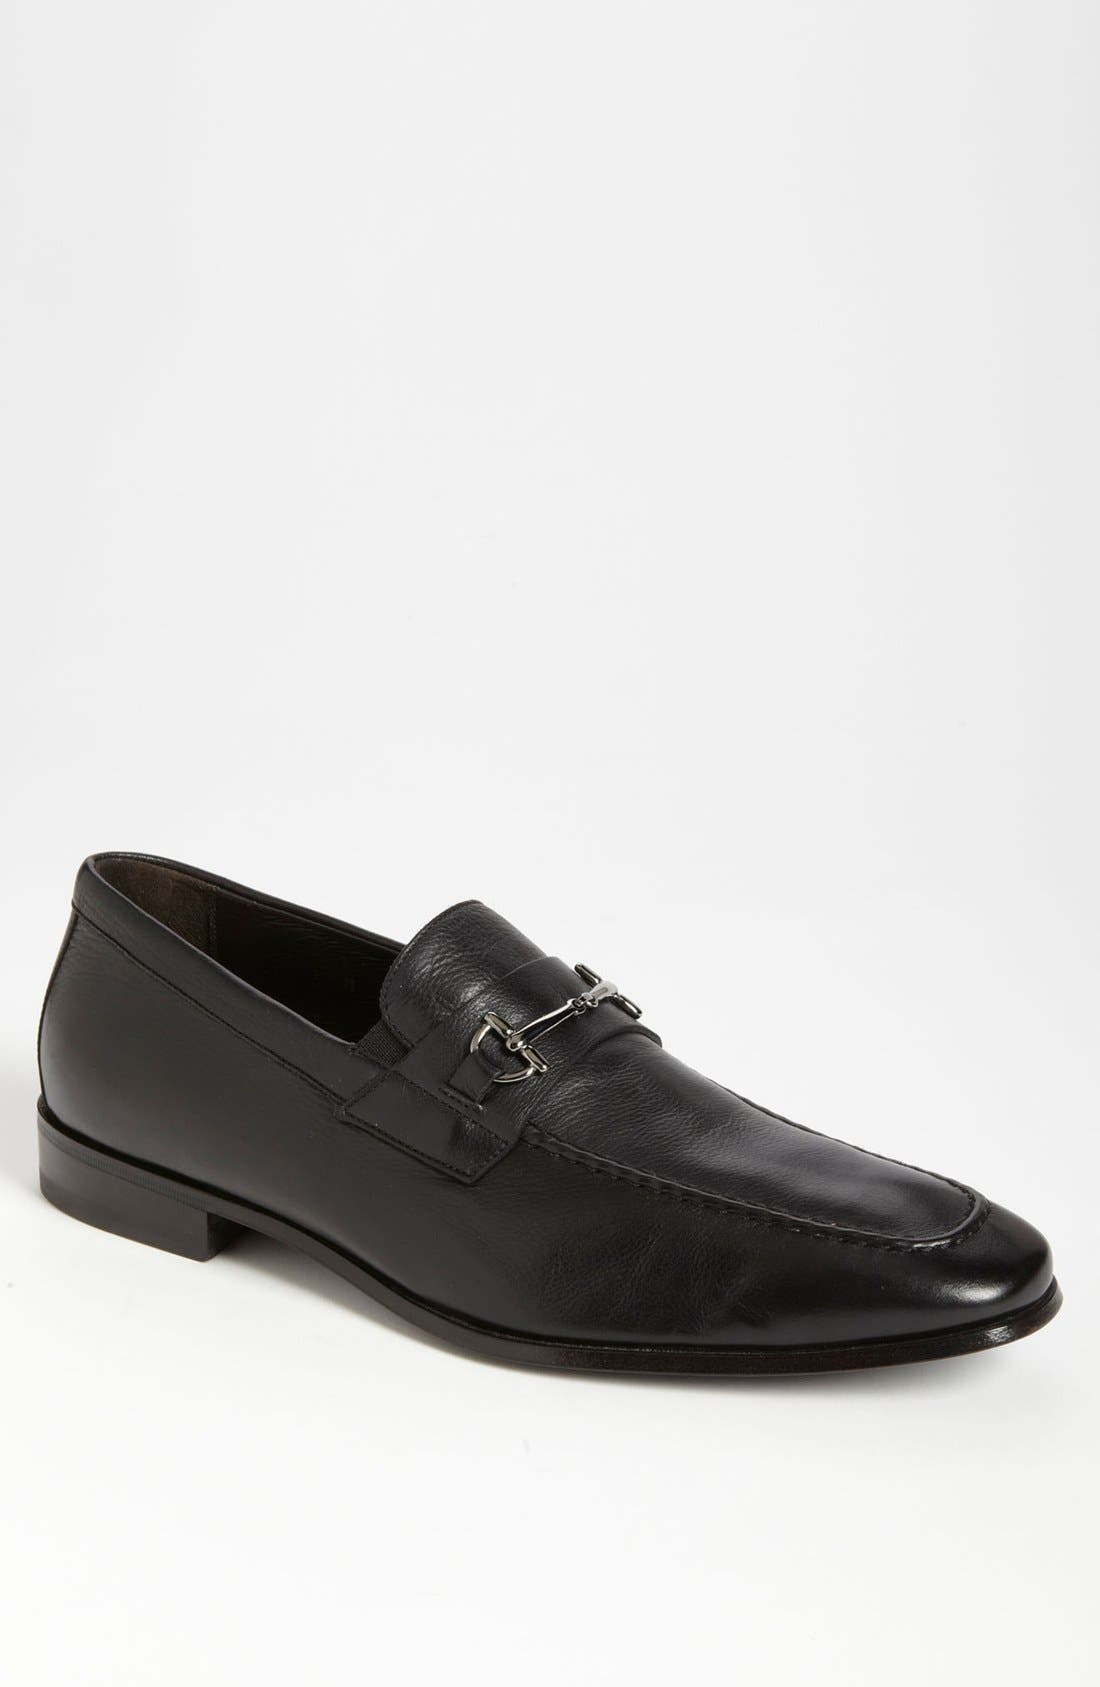 Alternate Image 1 Selected - Bruno Magli 'Mamante' Bit Loafer (Online Only)